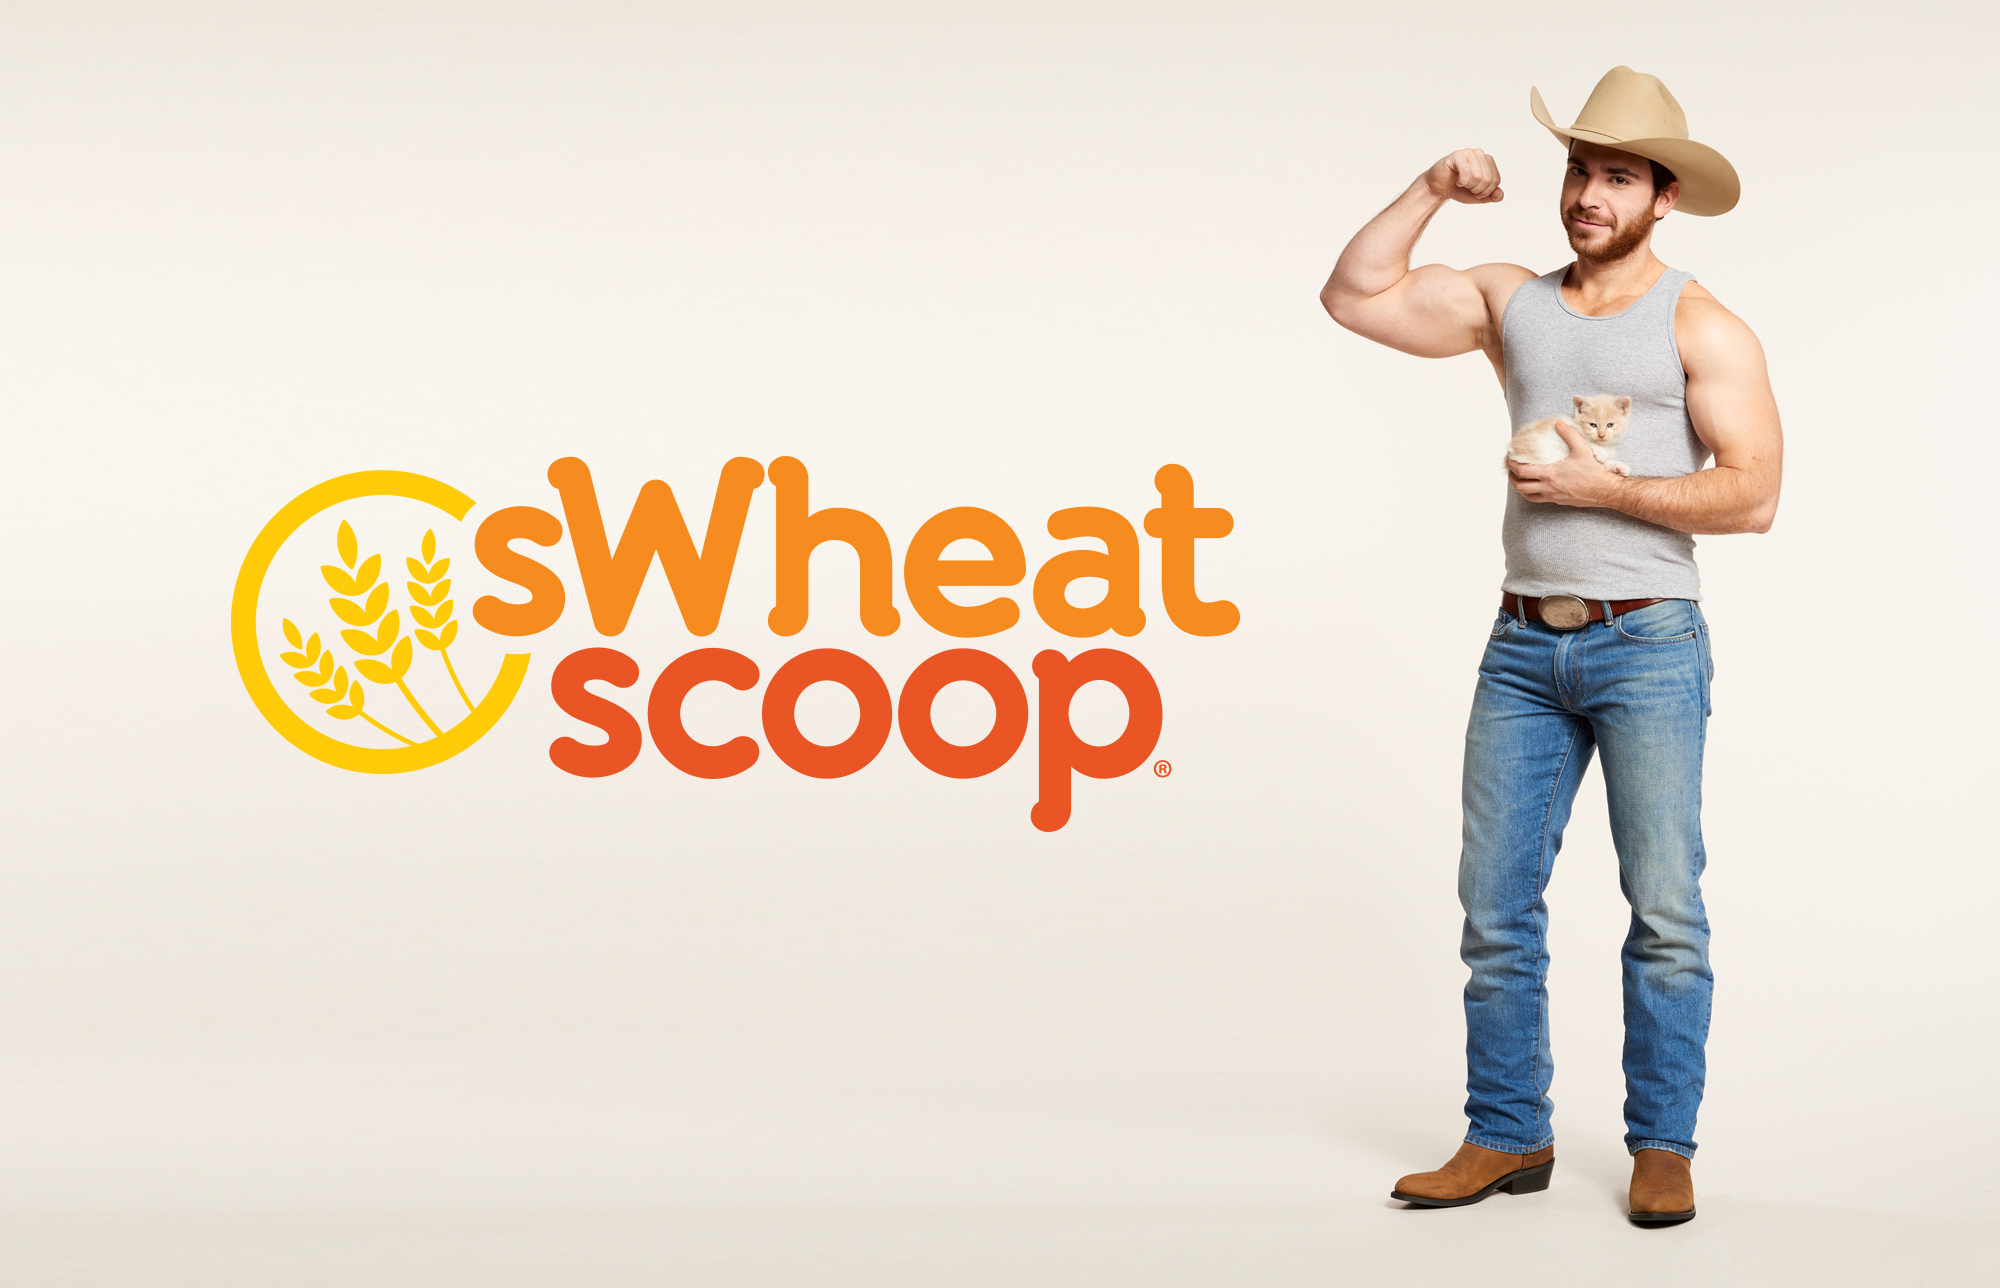 sWheat Scoop logo next to wheat farmer